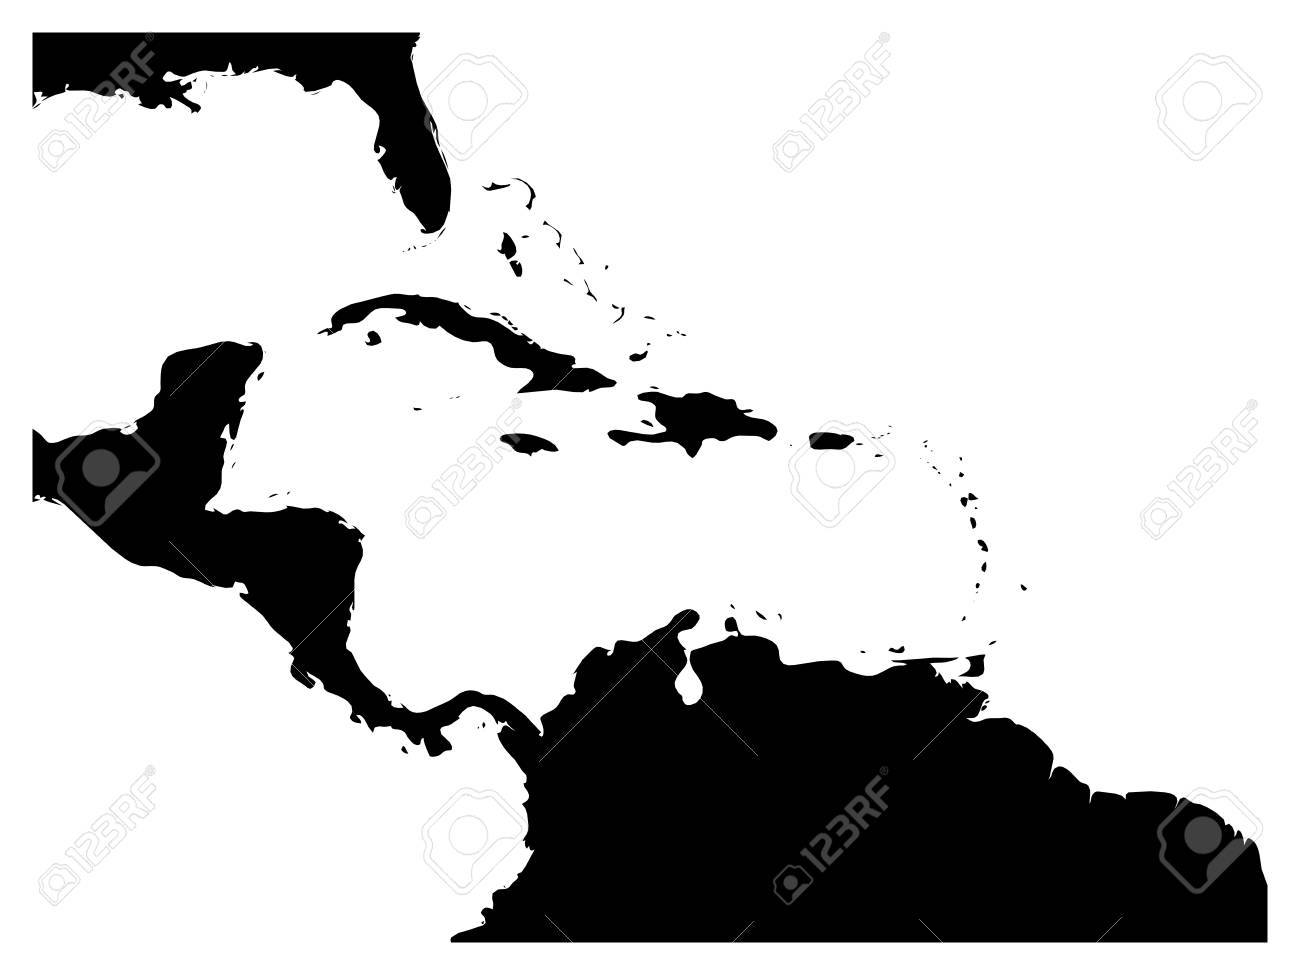 Map Of Caribbean Region And Central America. Black Land Silhouette And White  Water. Simple